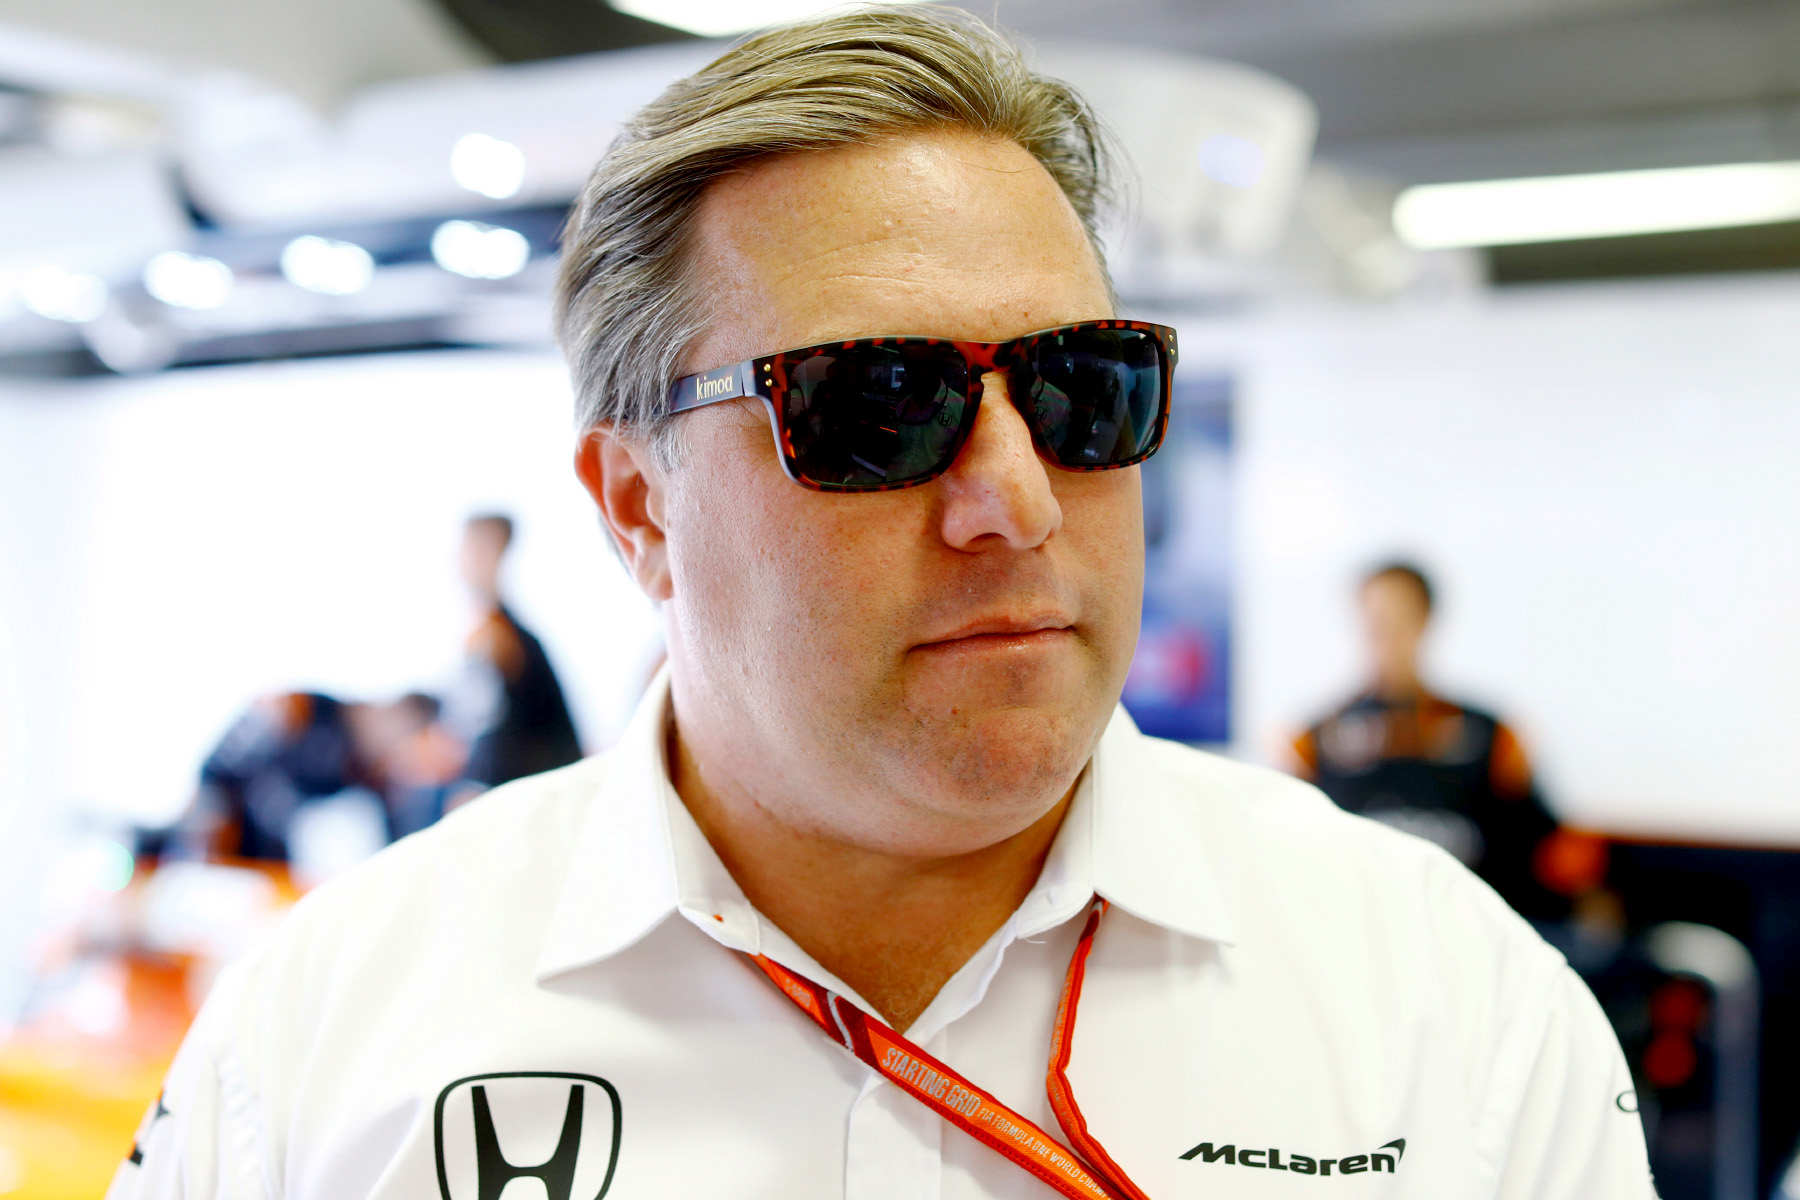 © McLaren executive director Zak Brown at the Canadian Grand Prix.